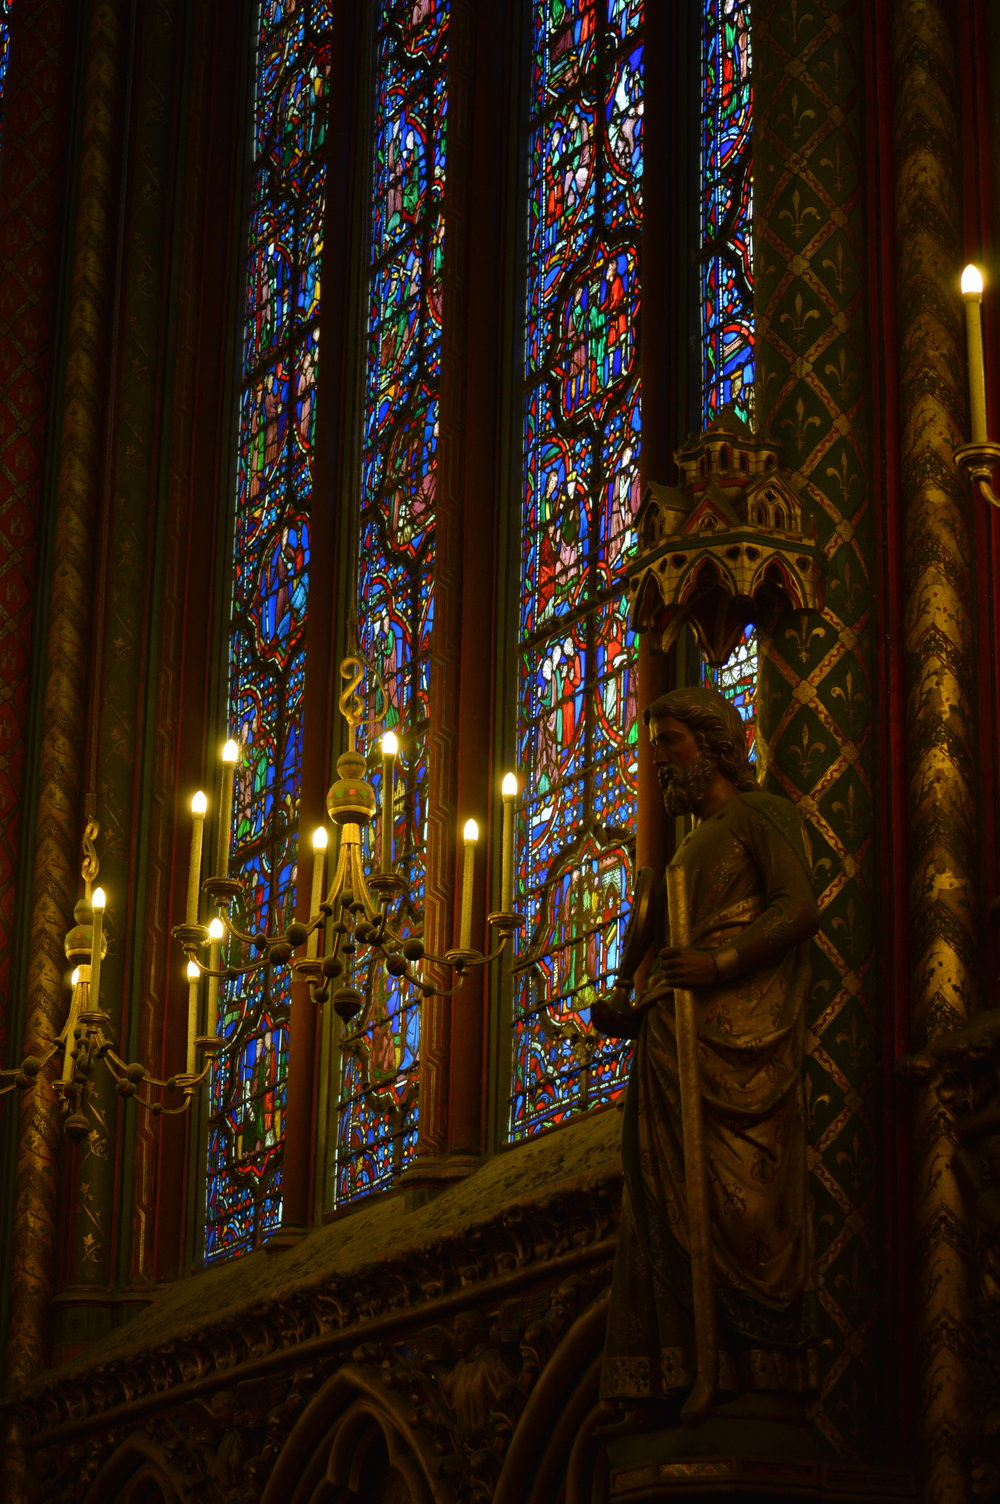 Interior, Sainte-Chapelle, Paris